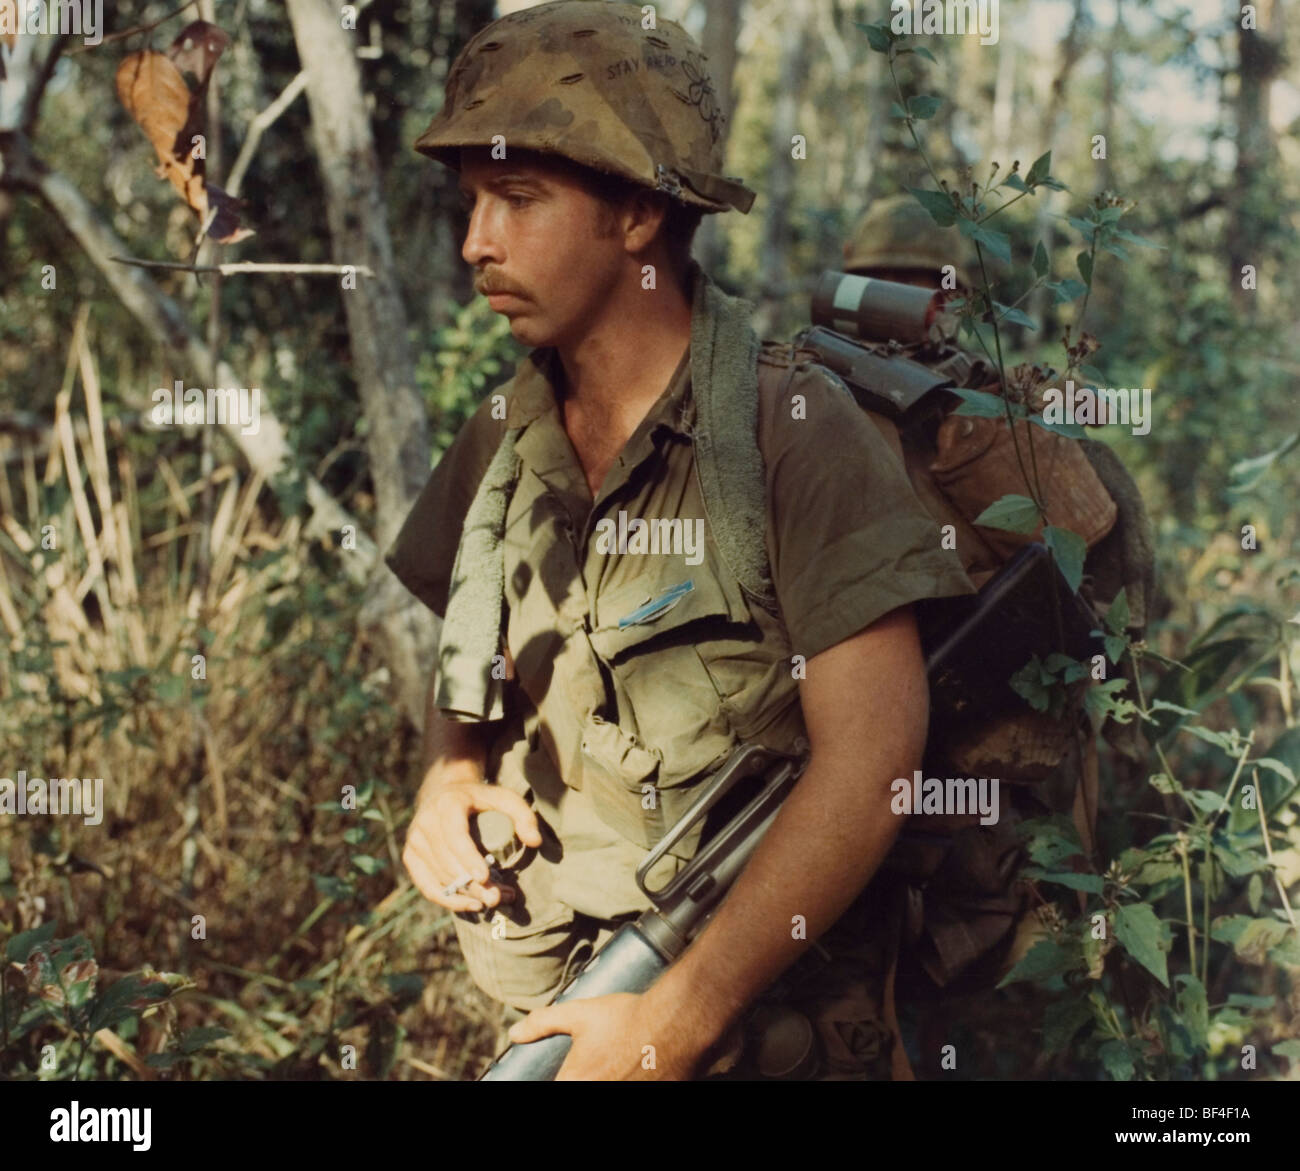 A member of the 1st Cavalry division walks on patrol during 1968 in the Vietnam War. - Stock Image